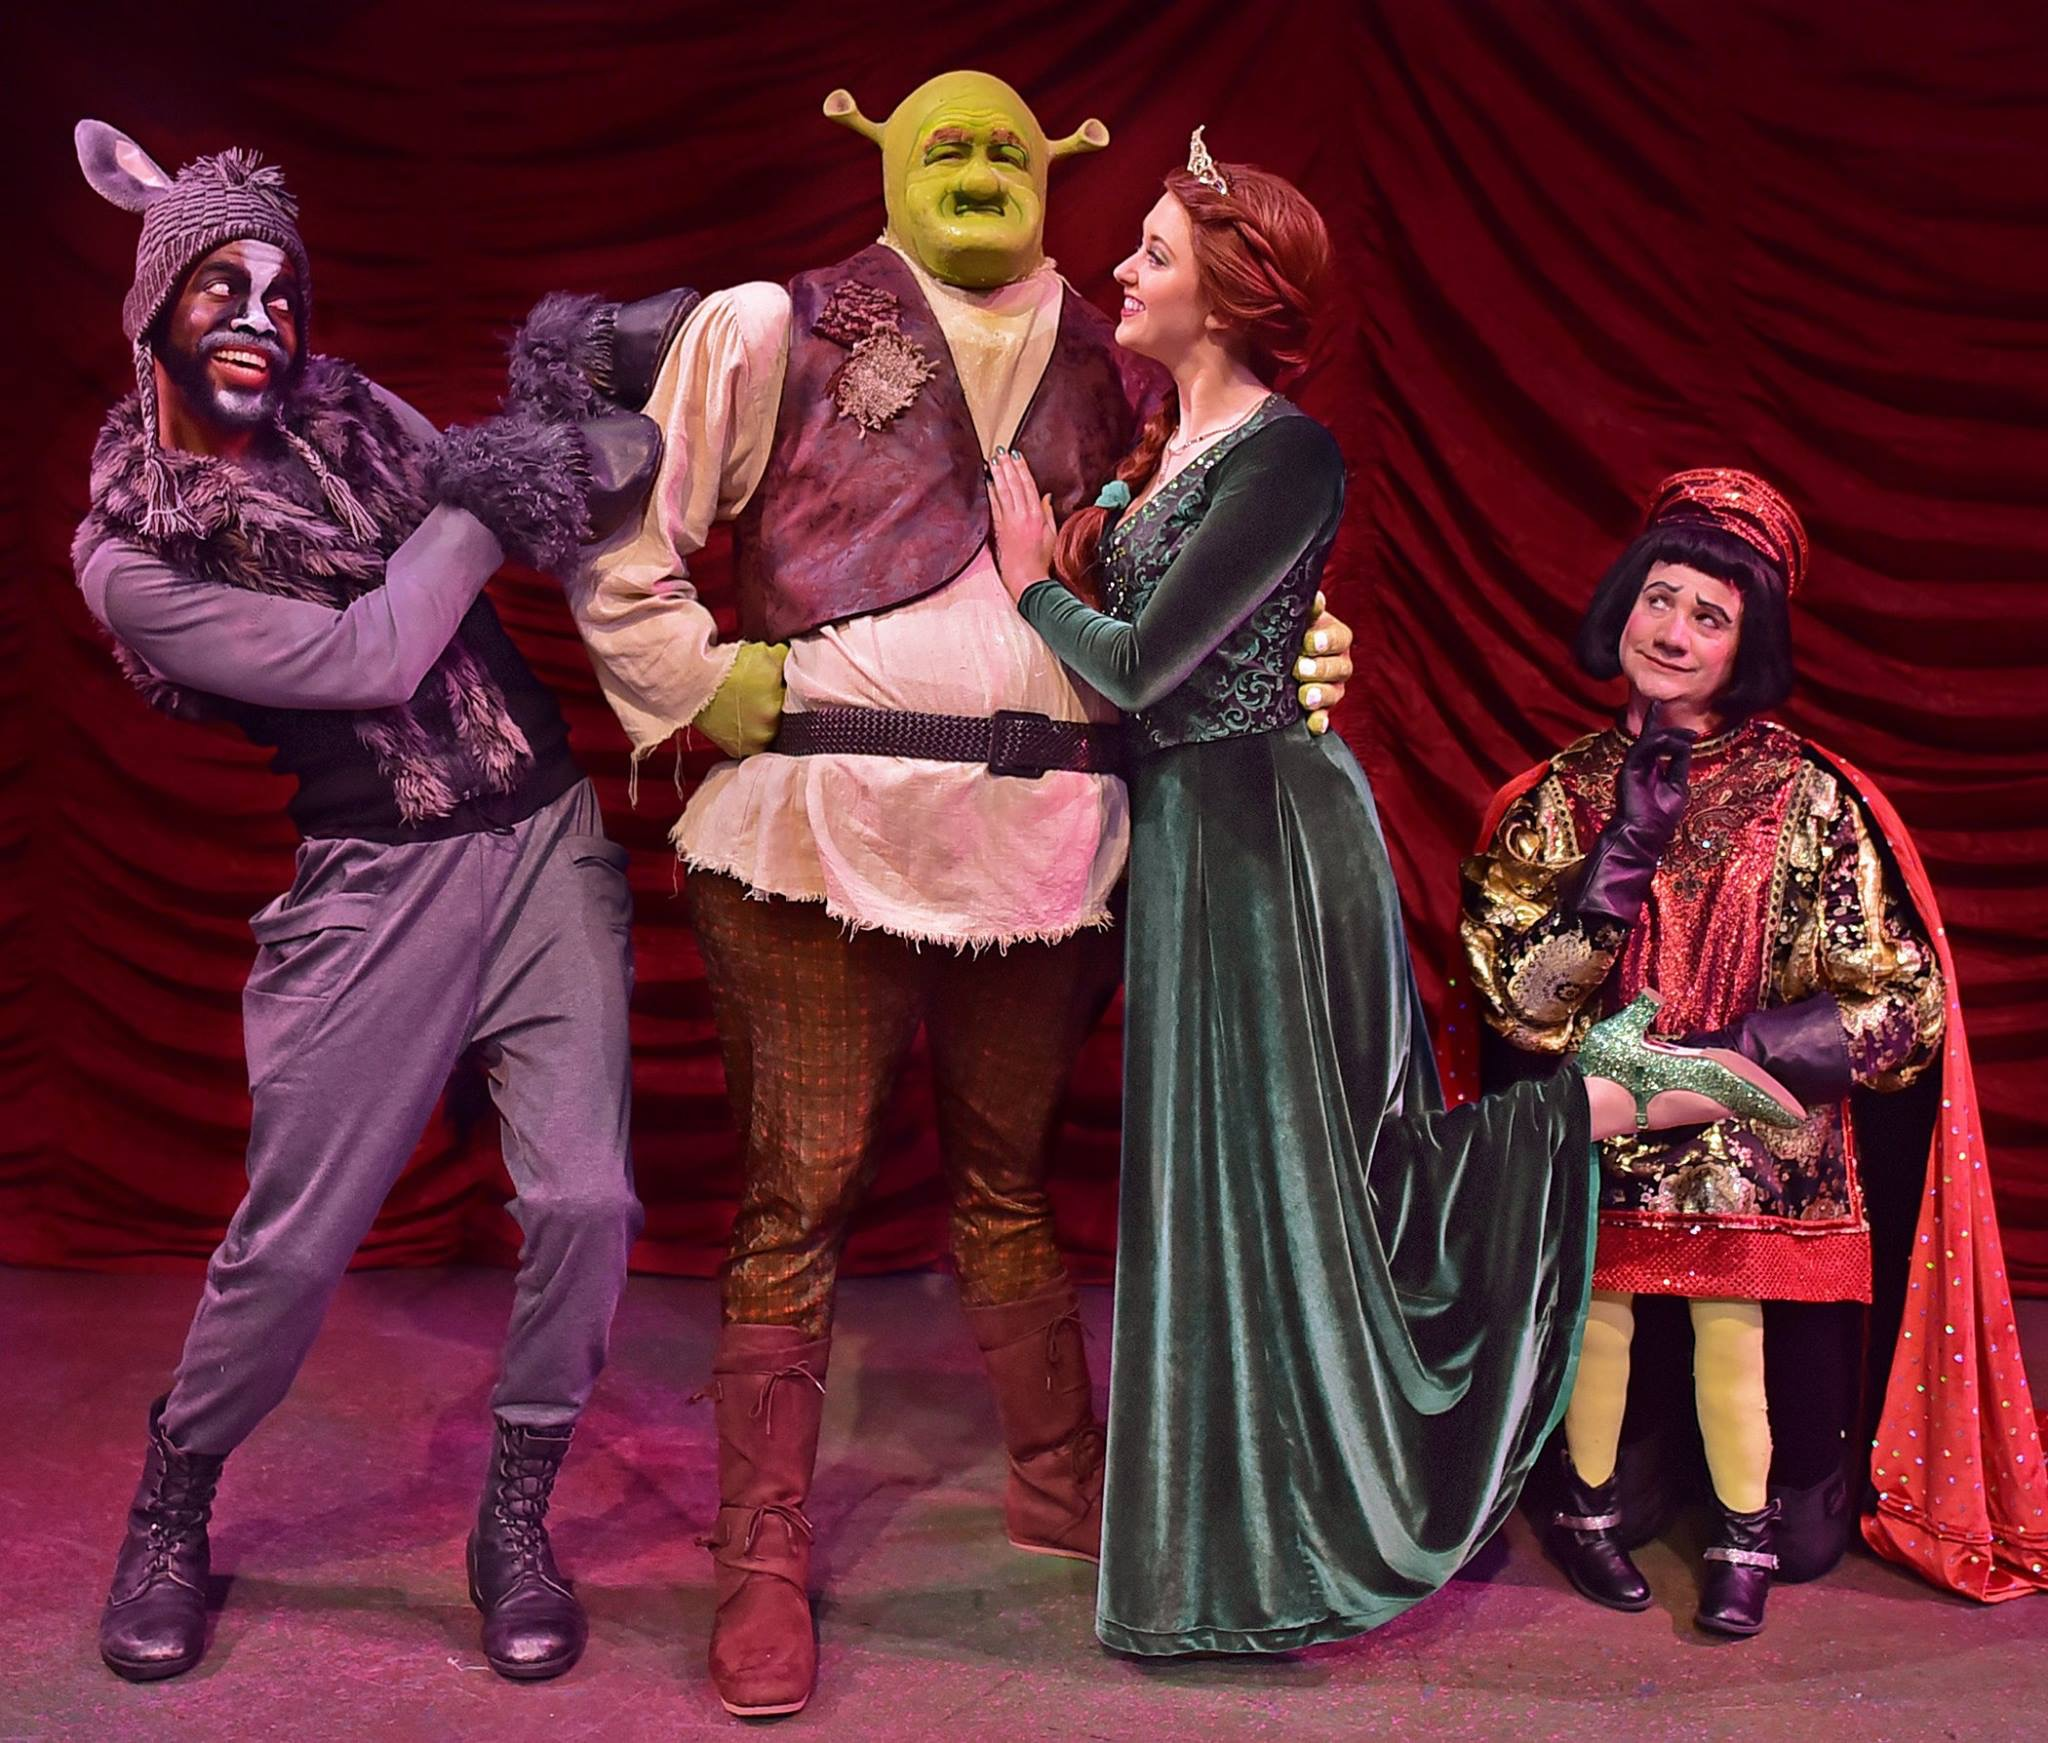 """Shrek the Musical - CLICK HERE to see photos and video of Emily as princess Fiona in """"Shrek the Musical"""" at Beef and Boards."""